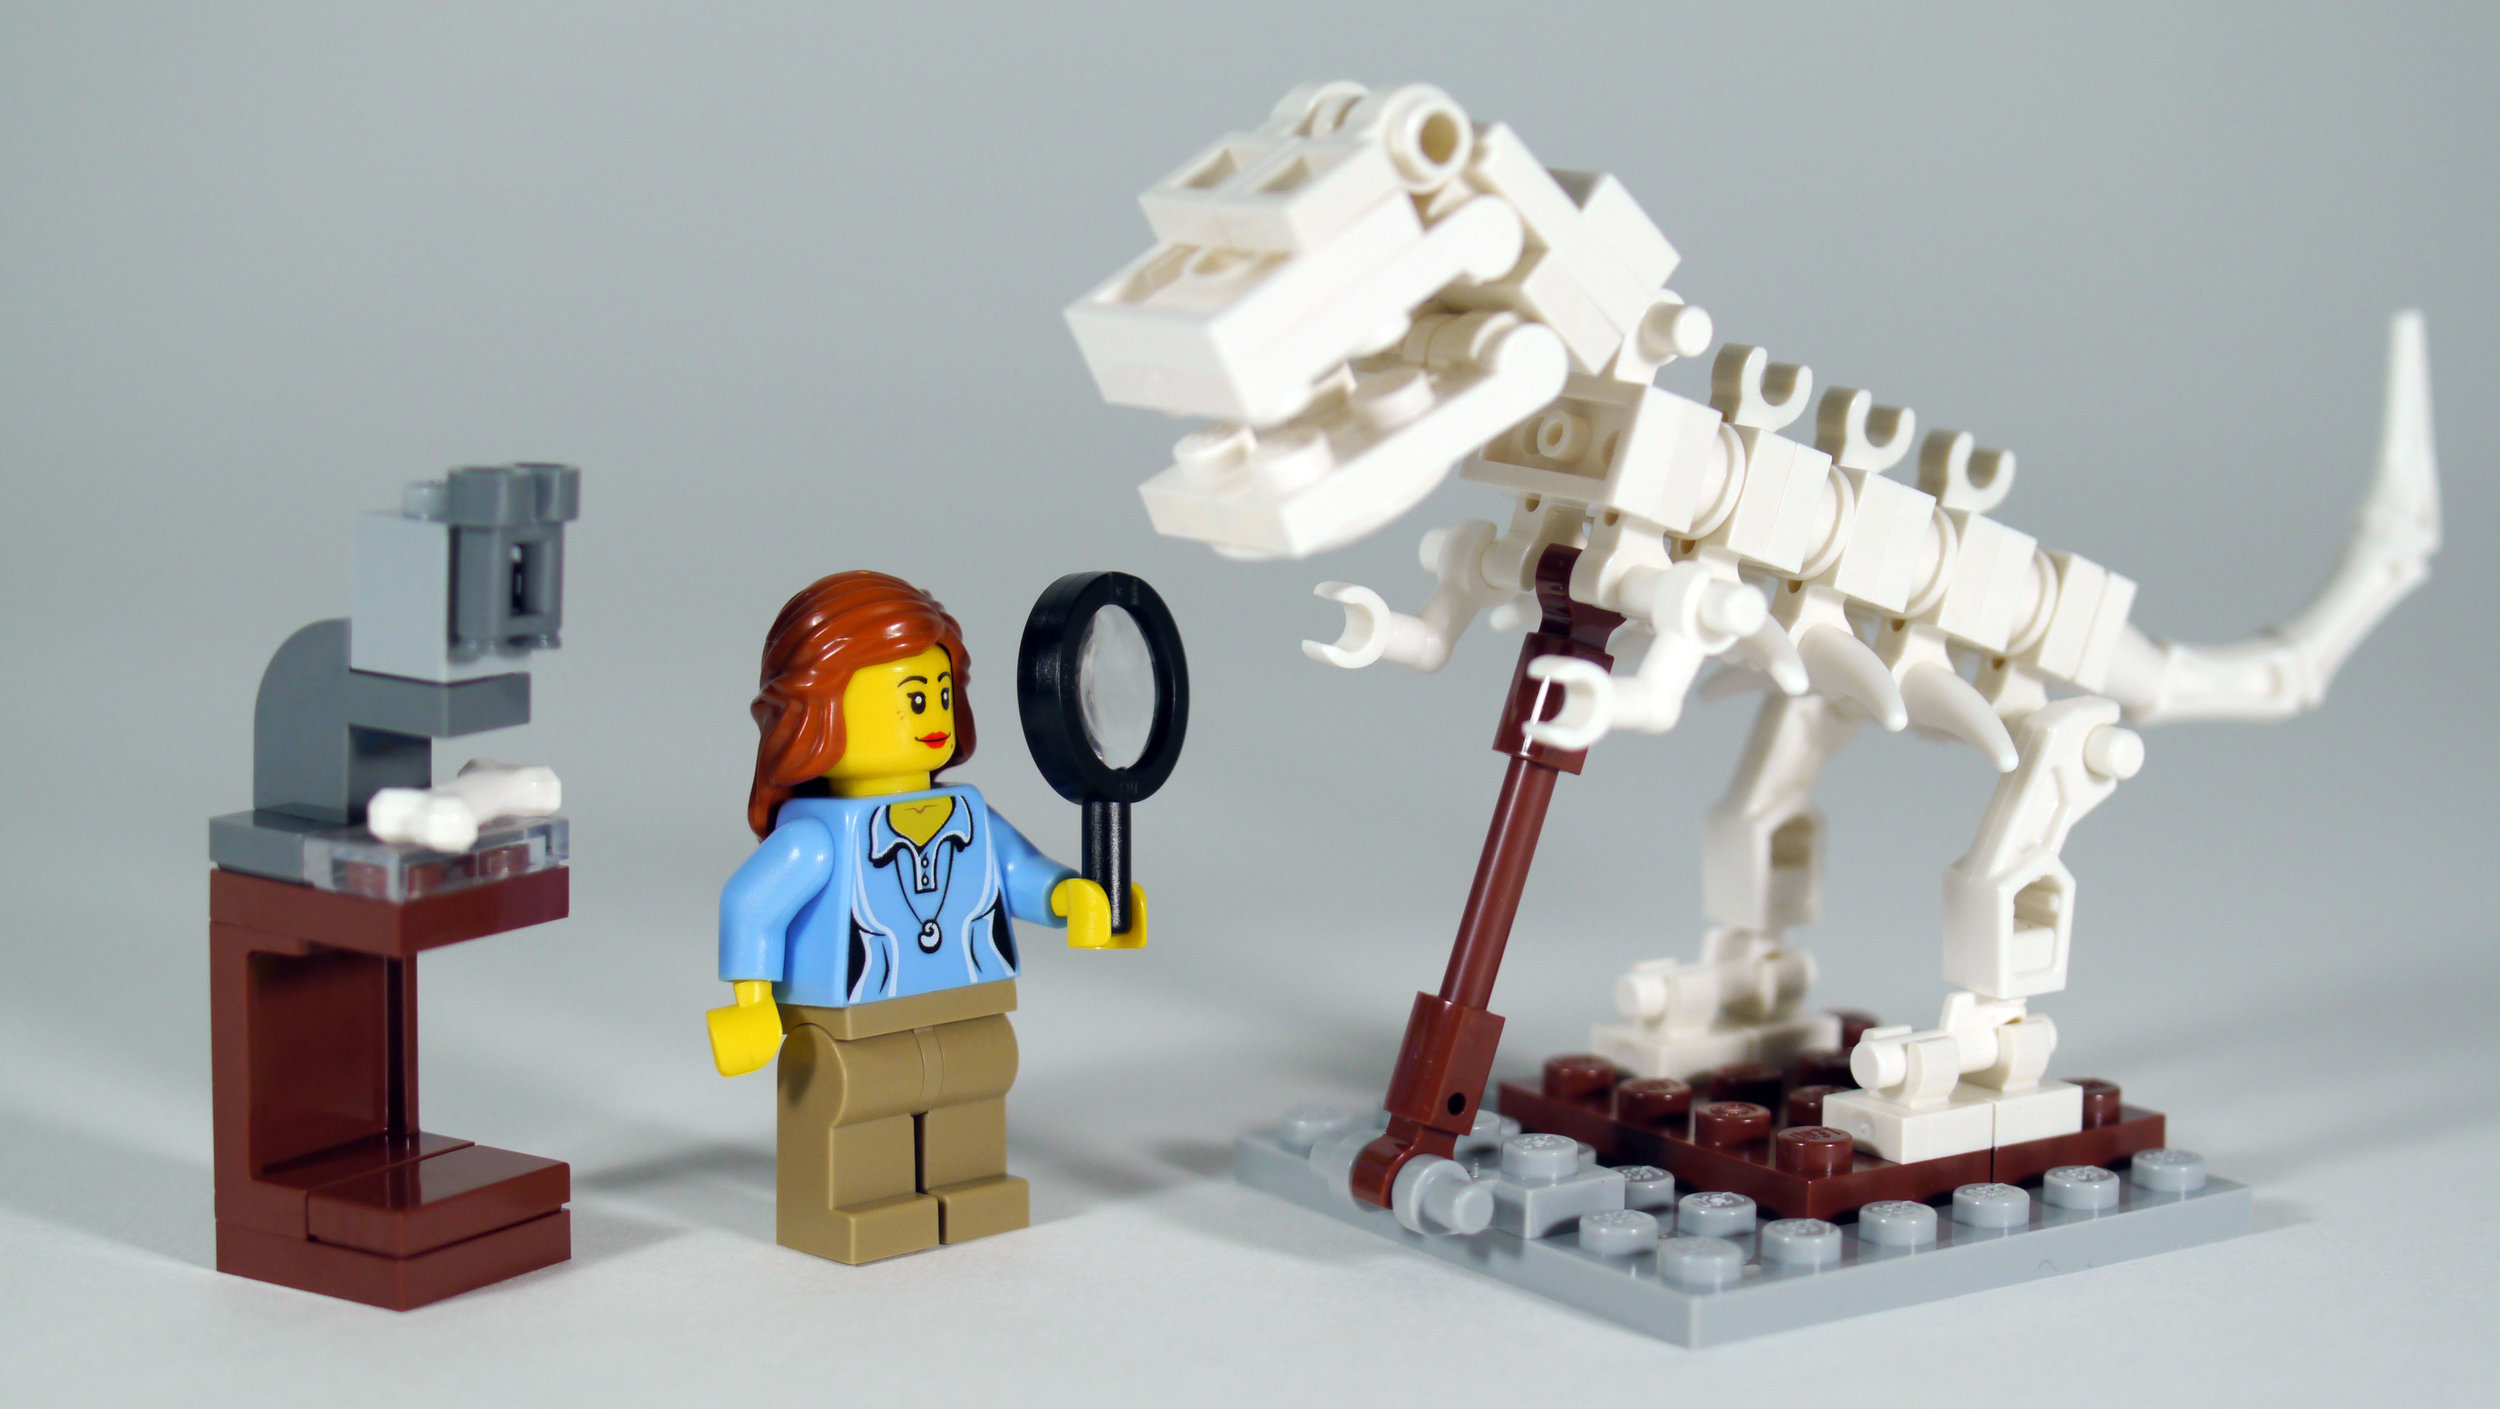 Image credit: LEGO Ideas Research Institute, Flickr.com